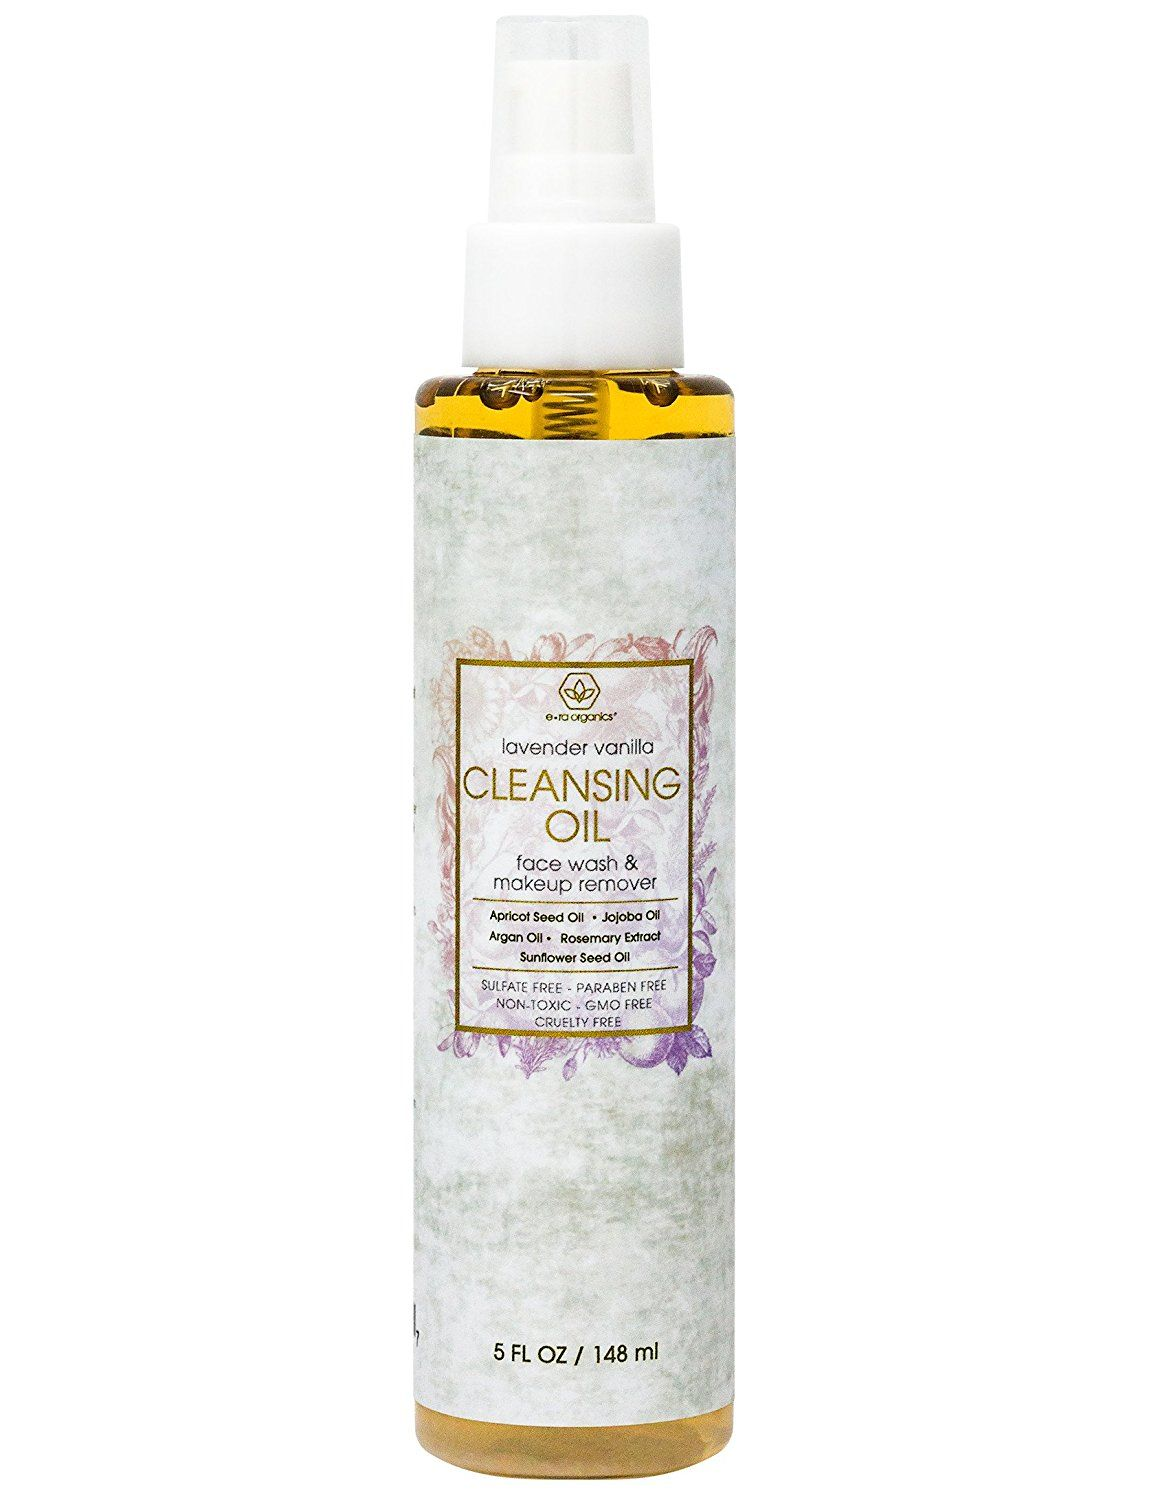 Cleansing Oil And Makeup Remover (5oz